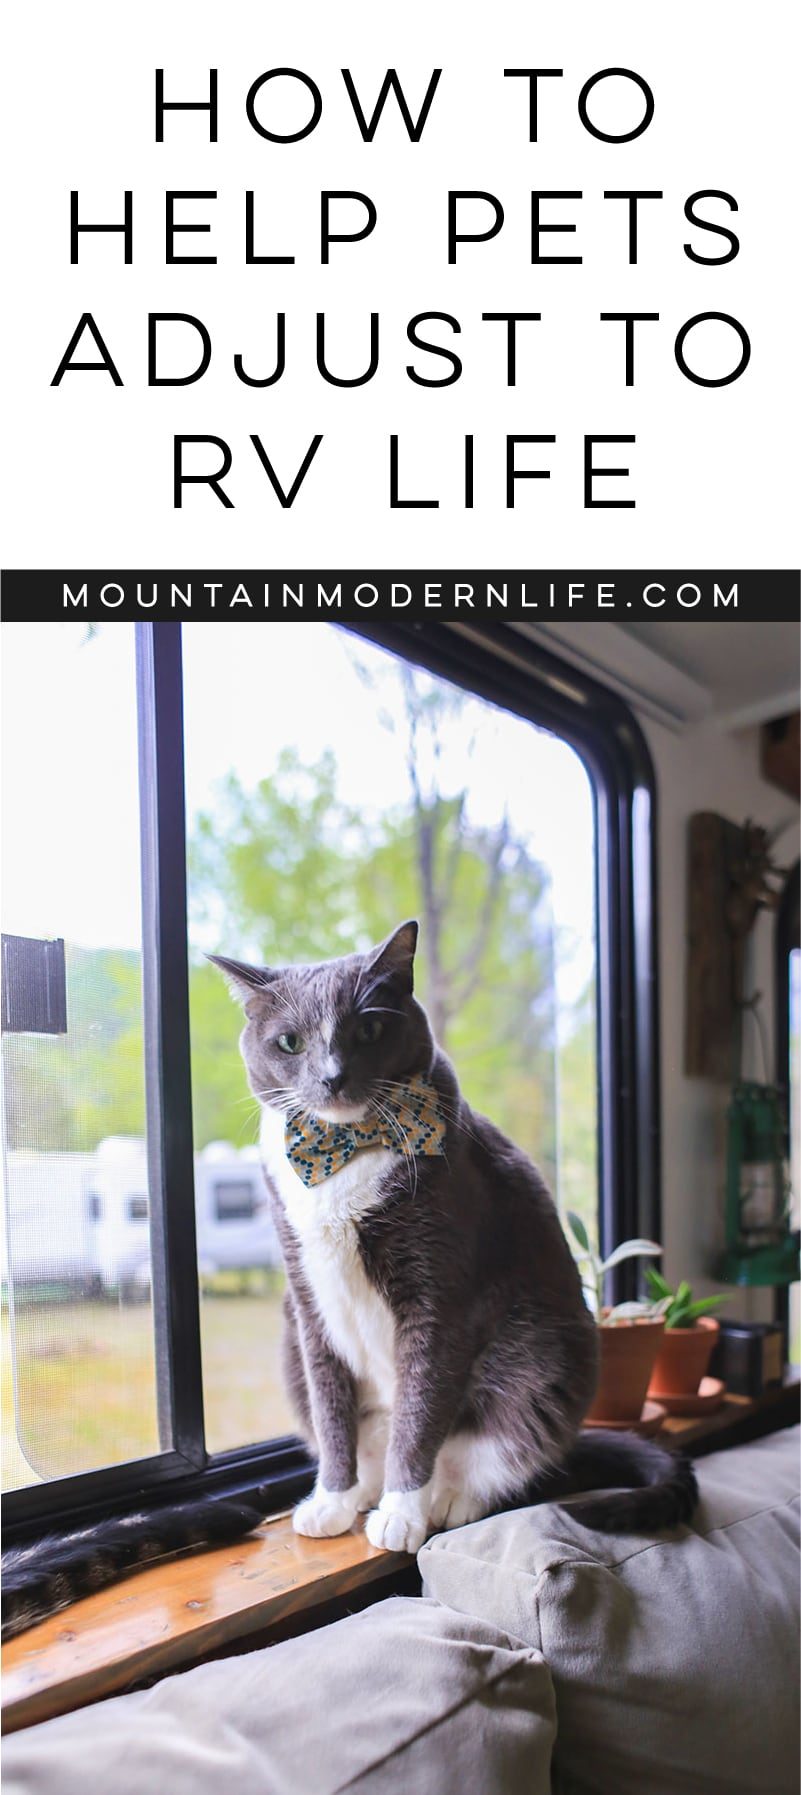 How to Help Pets Adjust to RV Life